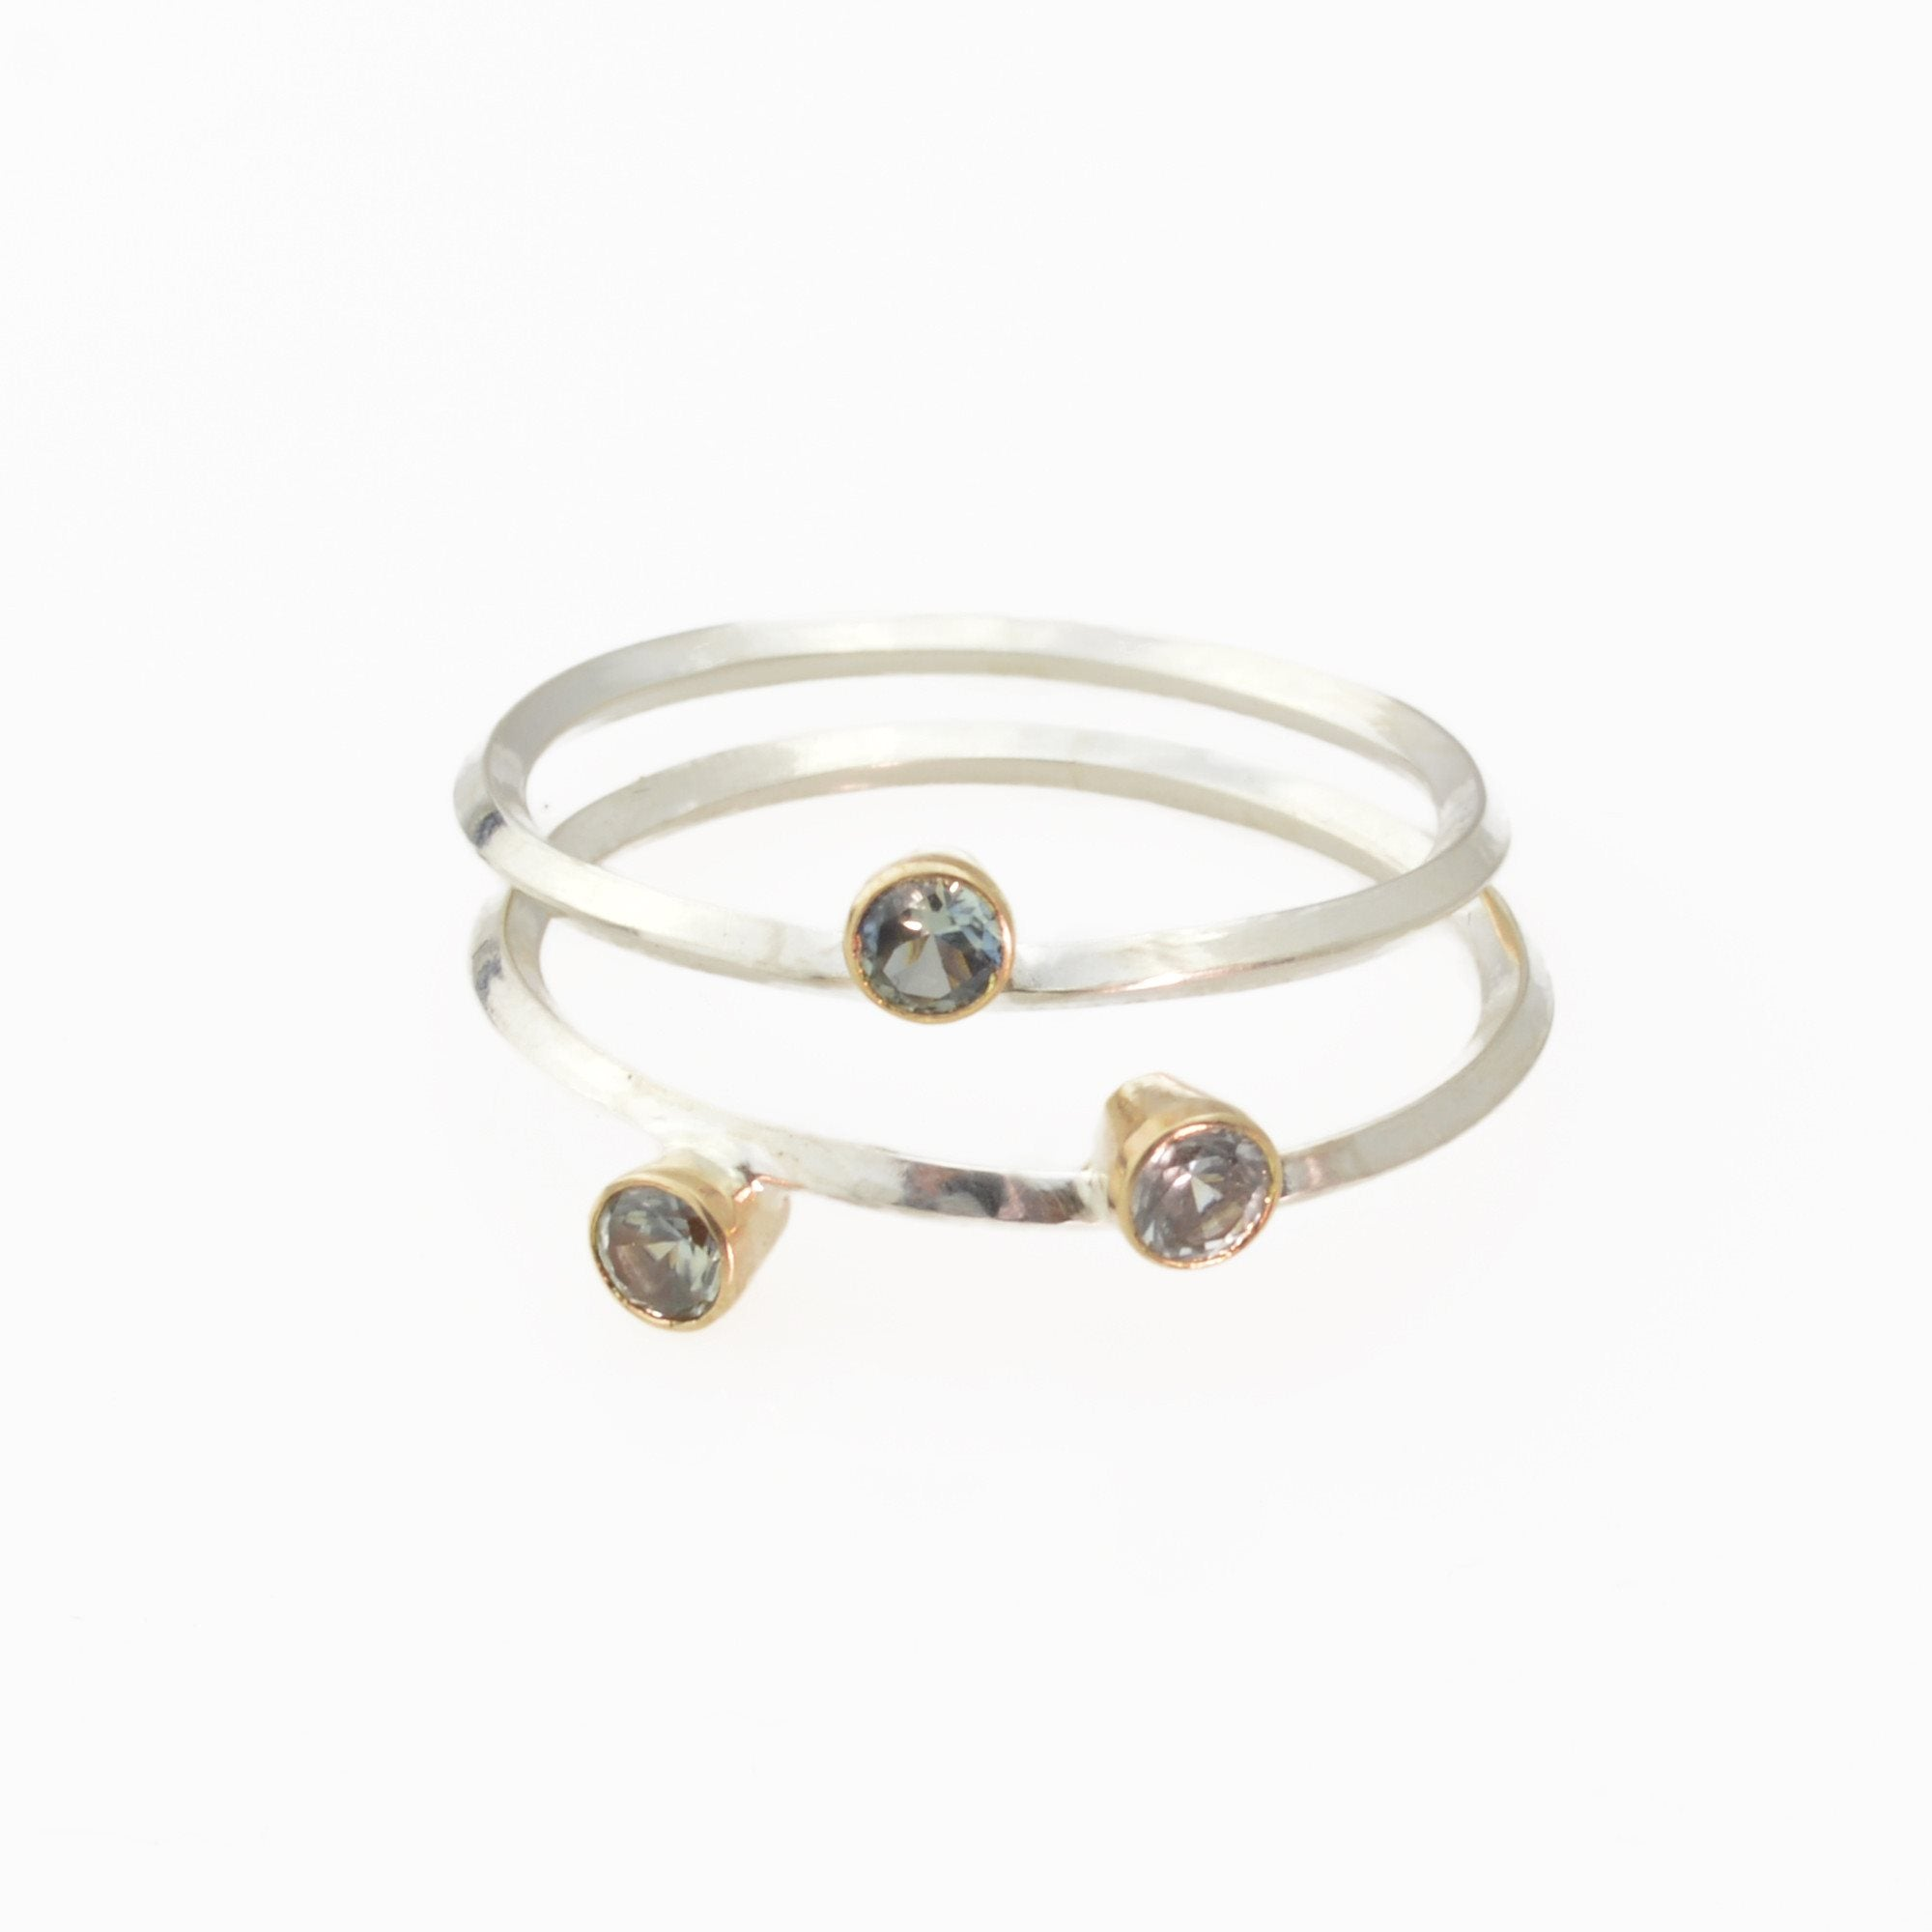 Metropolis Two Montana Sapphires Stacking Ring in 14k Gold and Sterling Silver